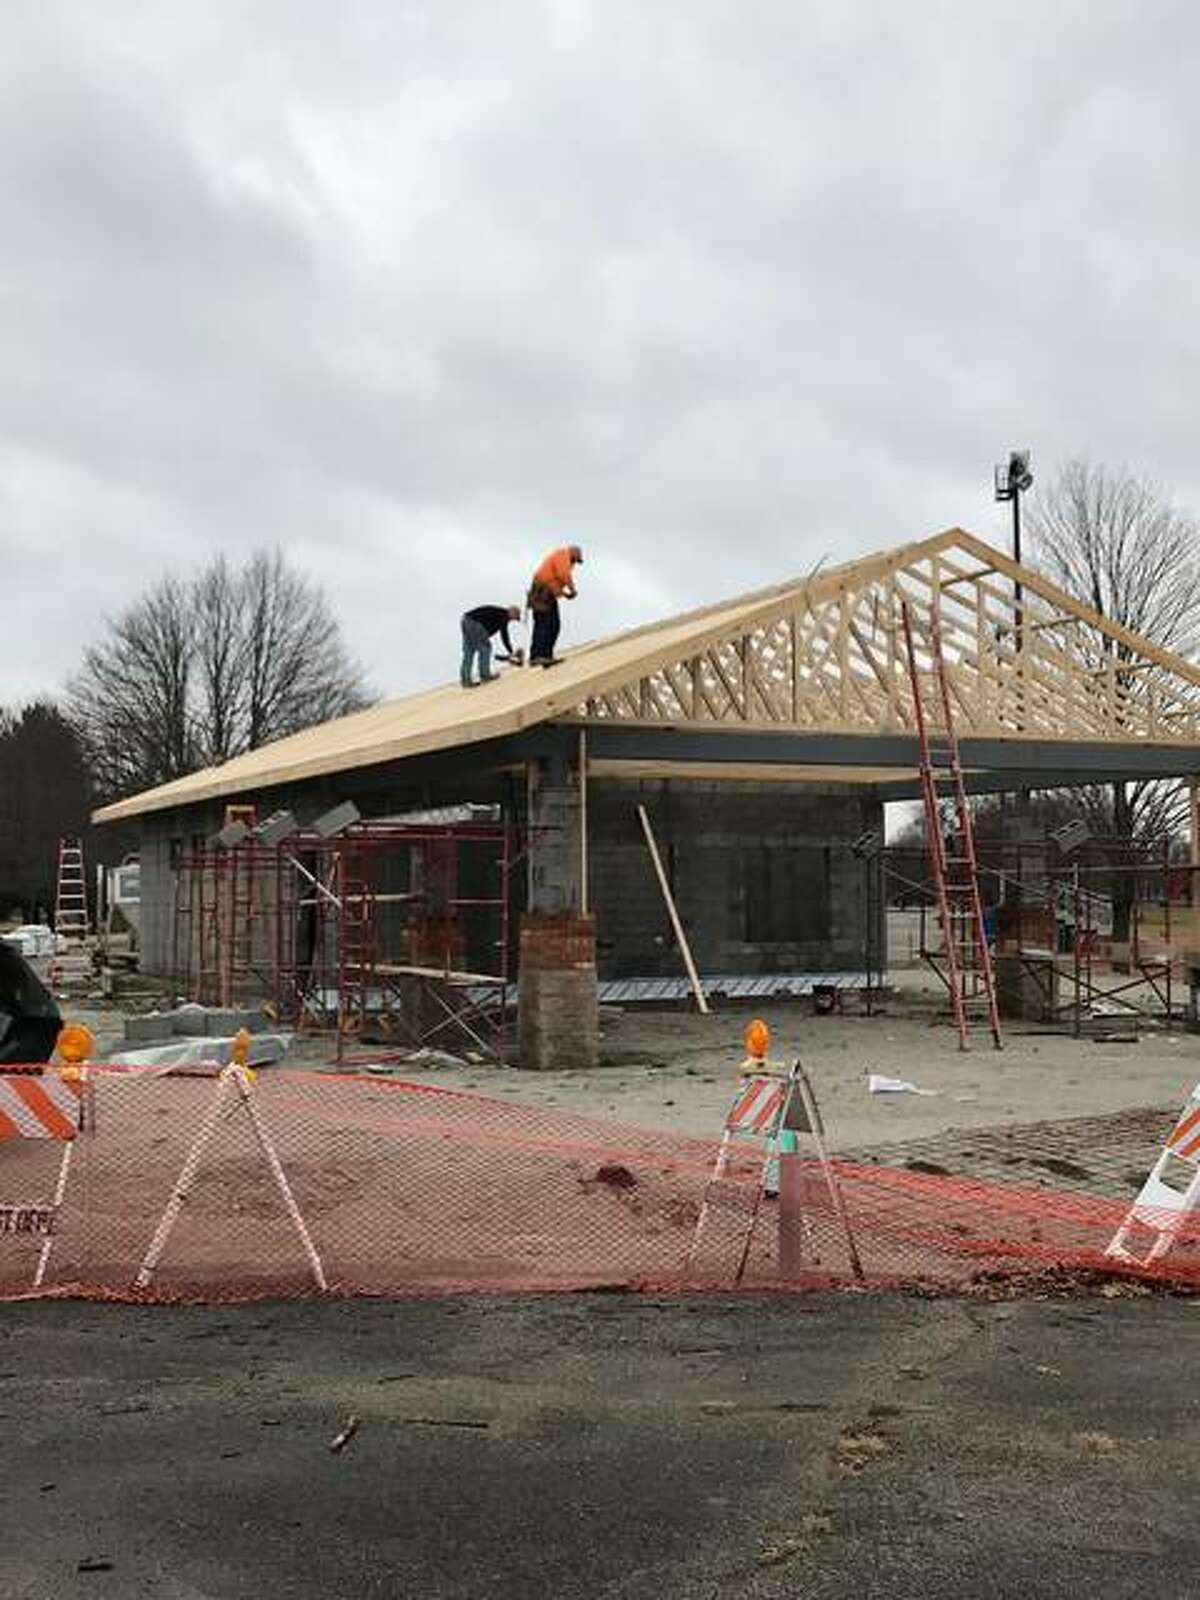 Volunteers work to construct a new concession stand at Gordon F. Moore Community Park in Alton Wednesday, as one part of $2.2 million in planned - and some completed - upgrades at the park.